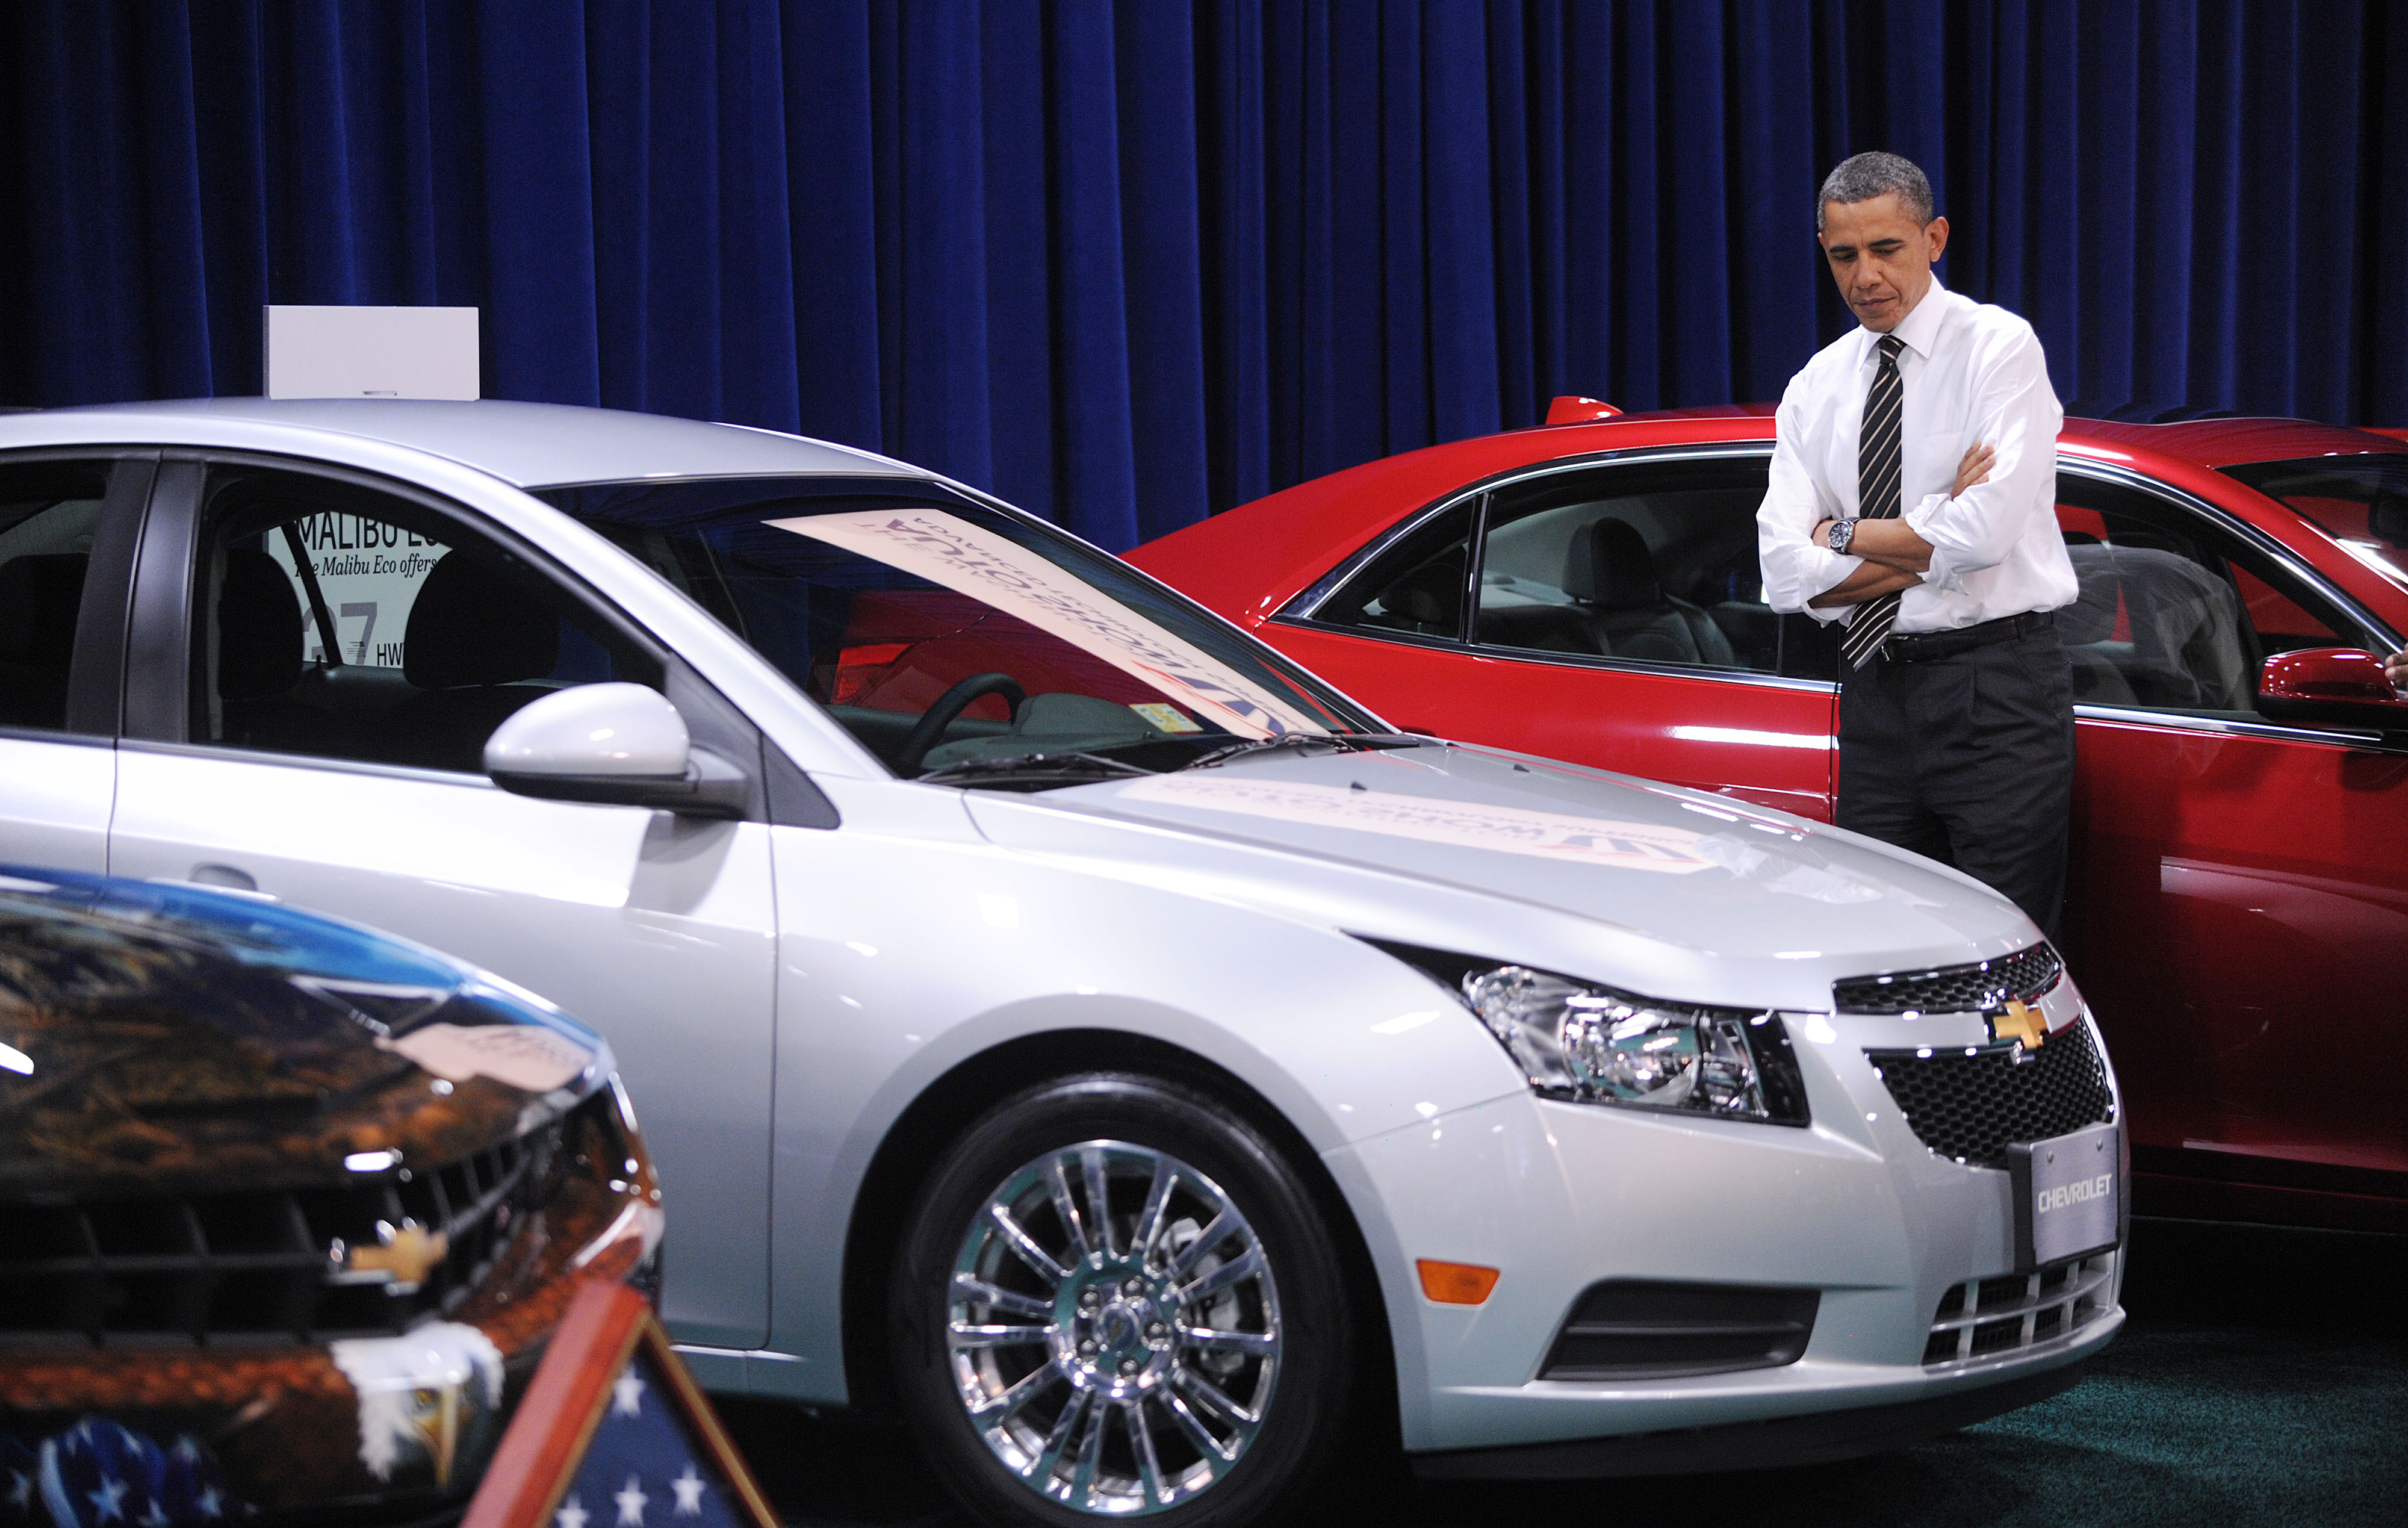 President Obama Visits The DC Auto Show 2016